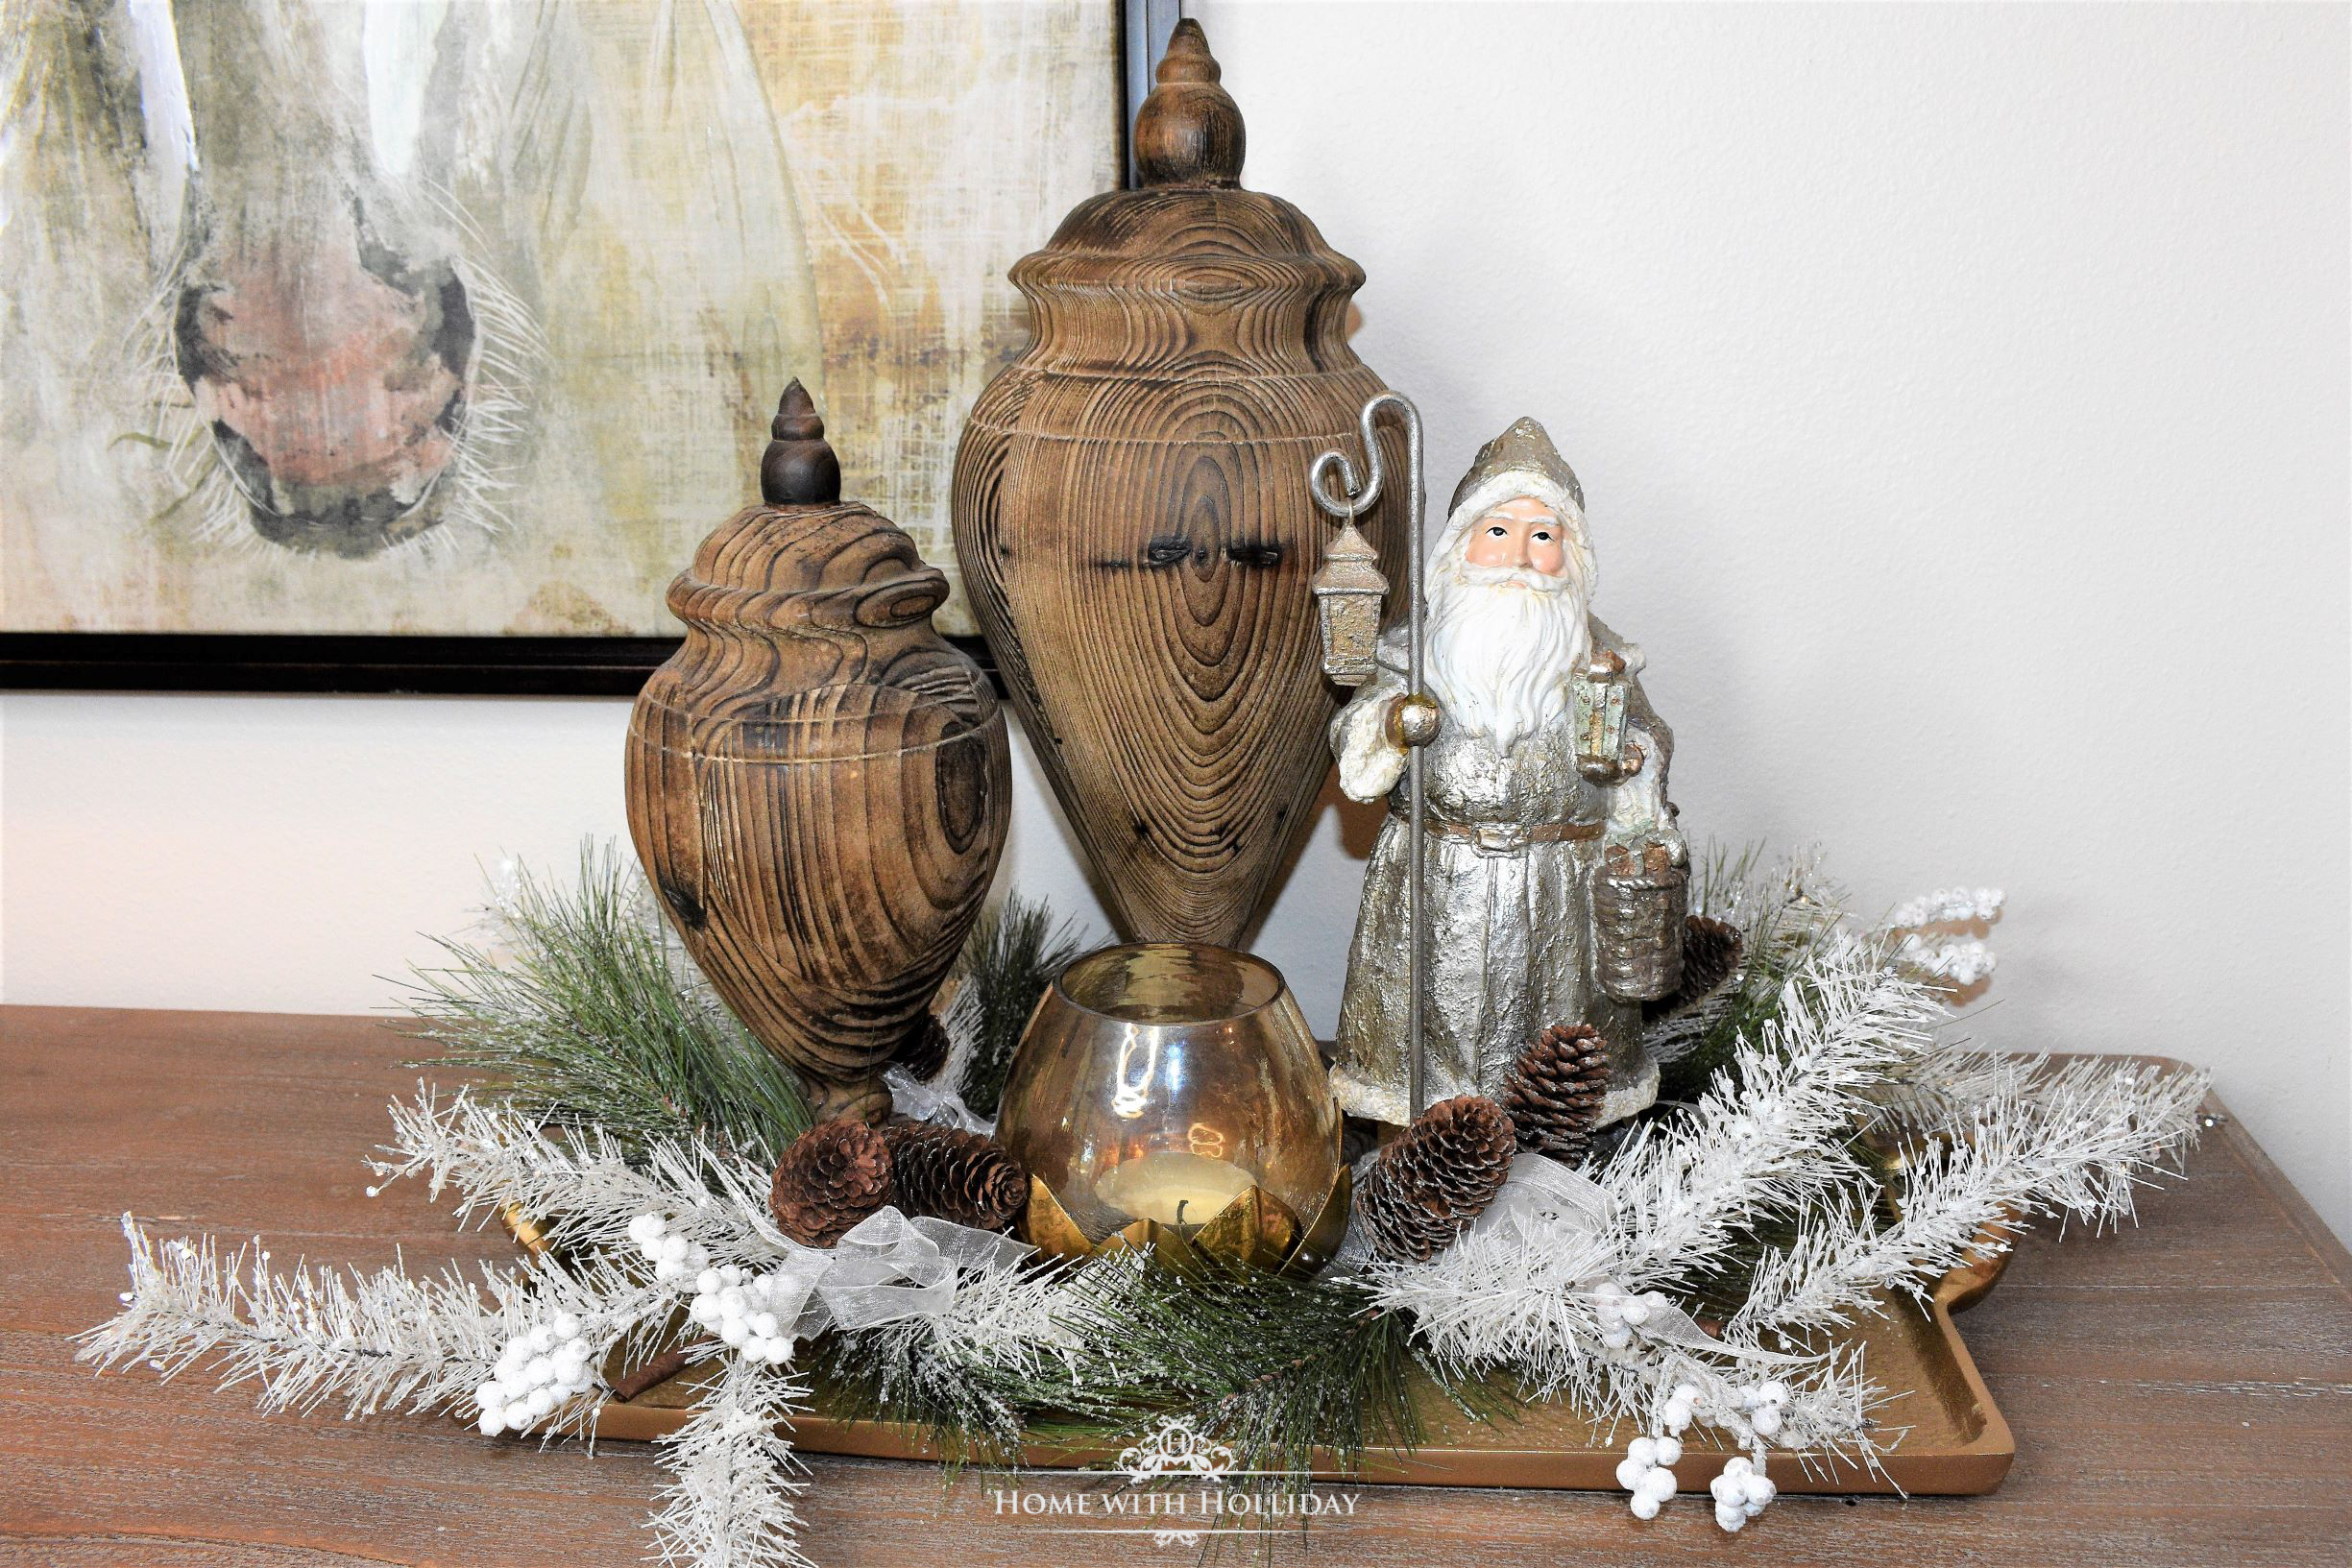 Christmas Decorating Ideas - Utilize Trays for Vignettes - Home with Holliday